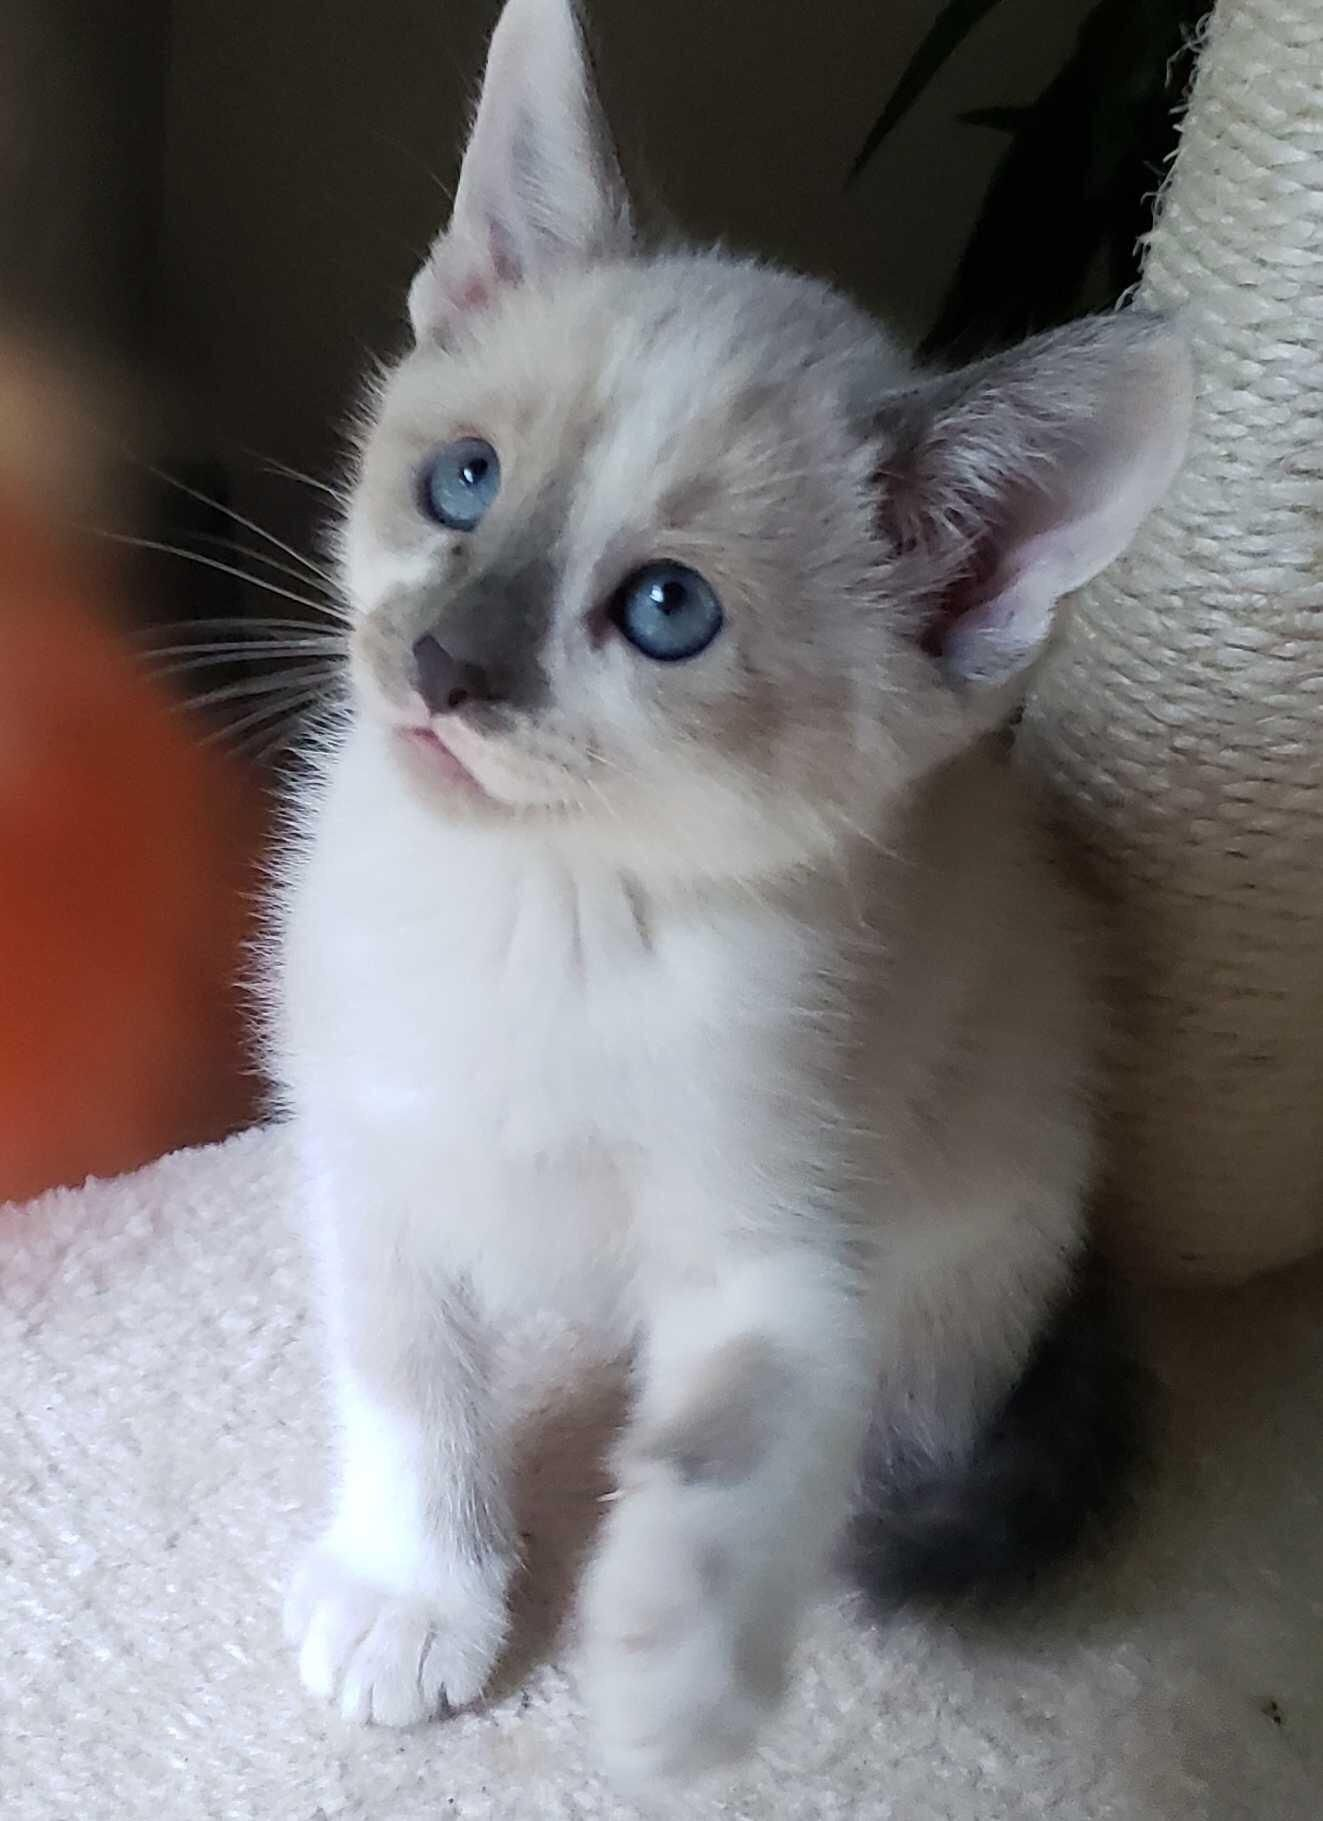 Ragdoll Kittens For Sale Craigslist - Year of Clean Water